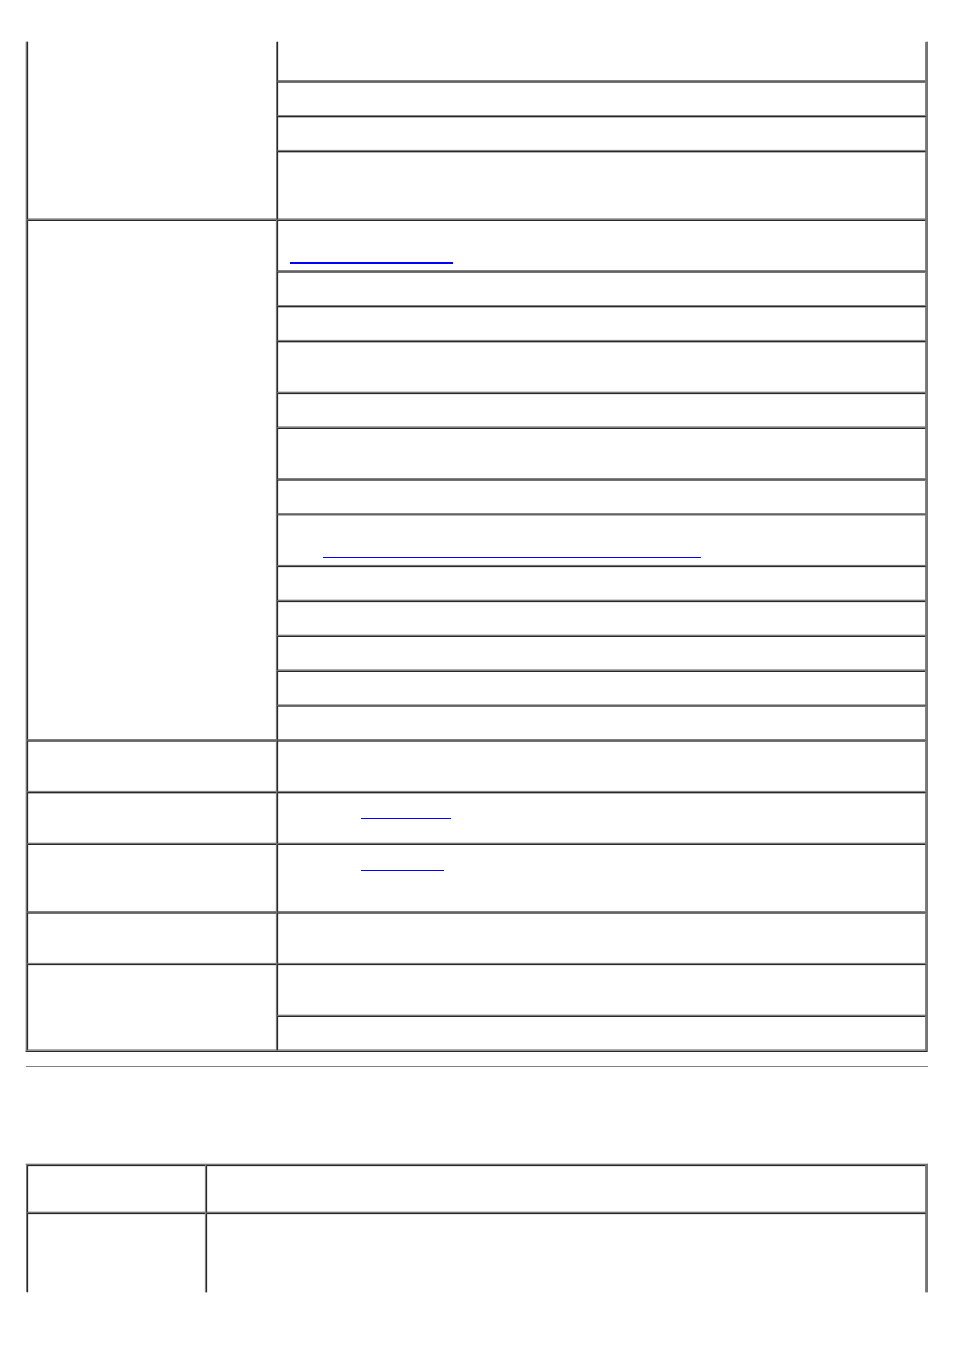 print quality problems dell 5100cn color laser printer user manual rh manualsdir com dell 5100cn printer driver windows 10 dell 5110cn printer manual